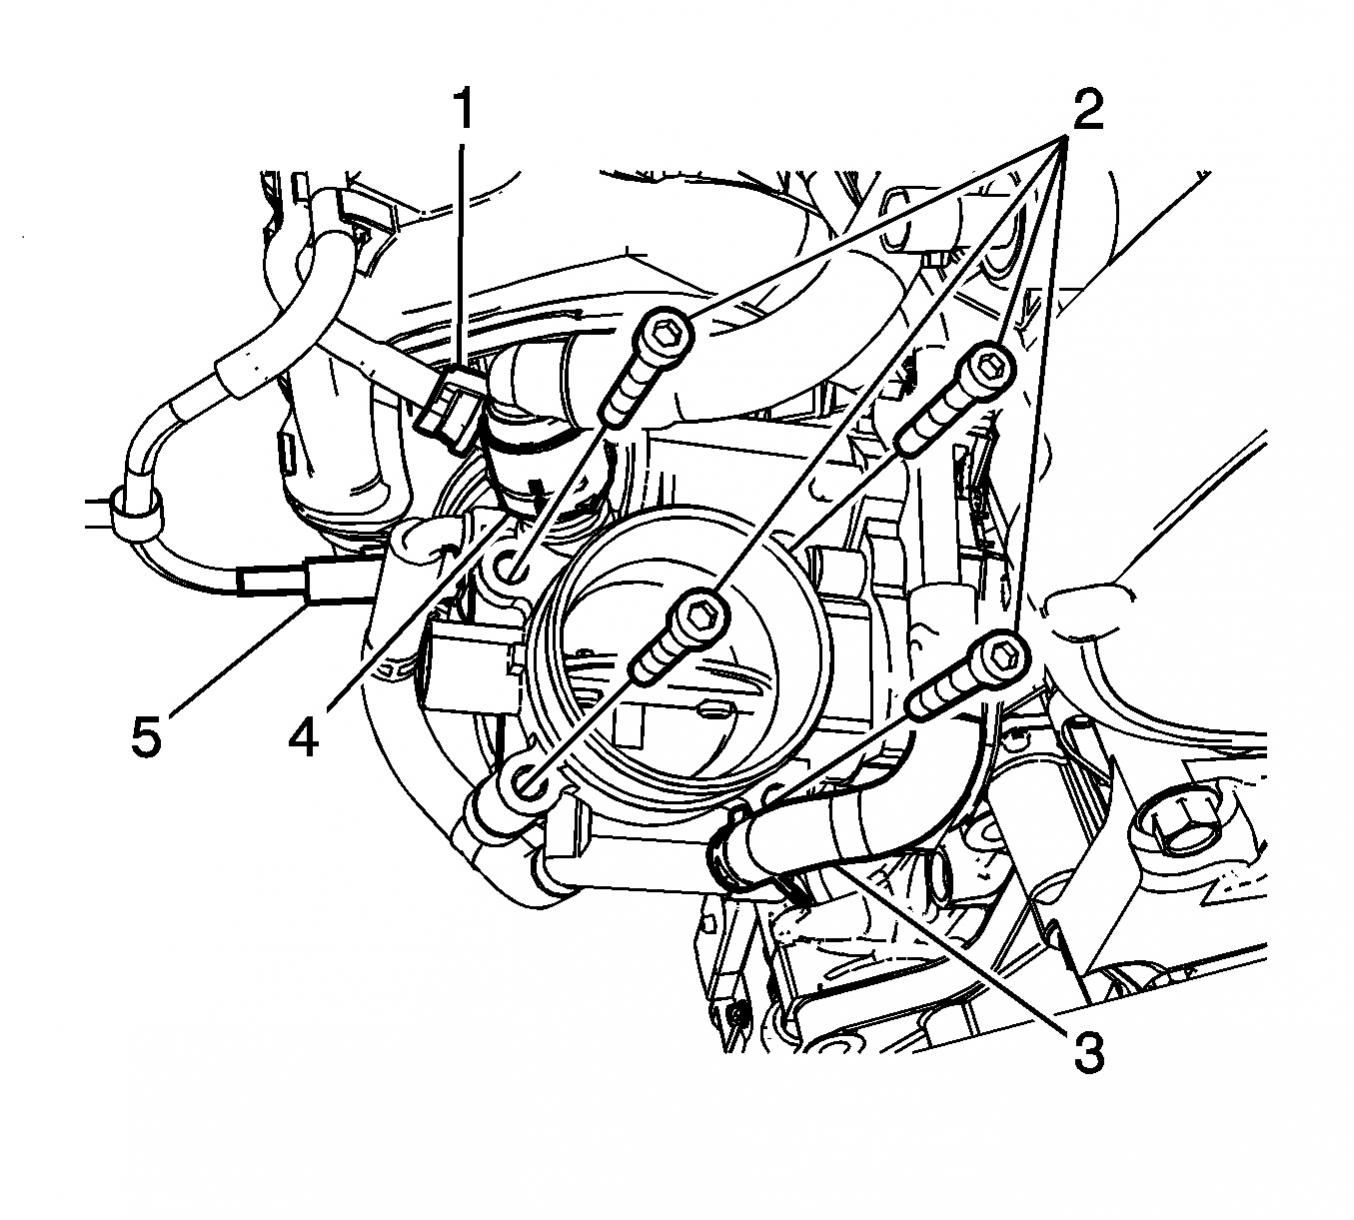 Chevrolet Aveo5 Wiring Diagram Electrical Schematics 2010 Chevy Aveo Engine 2009 Fuel System Circuit Connection U2022 Ignition Switch